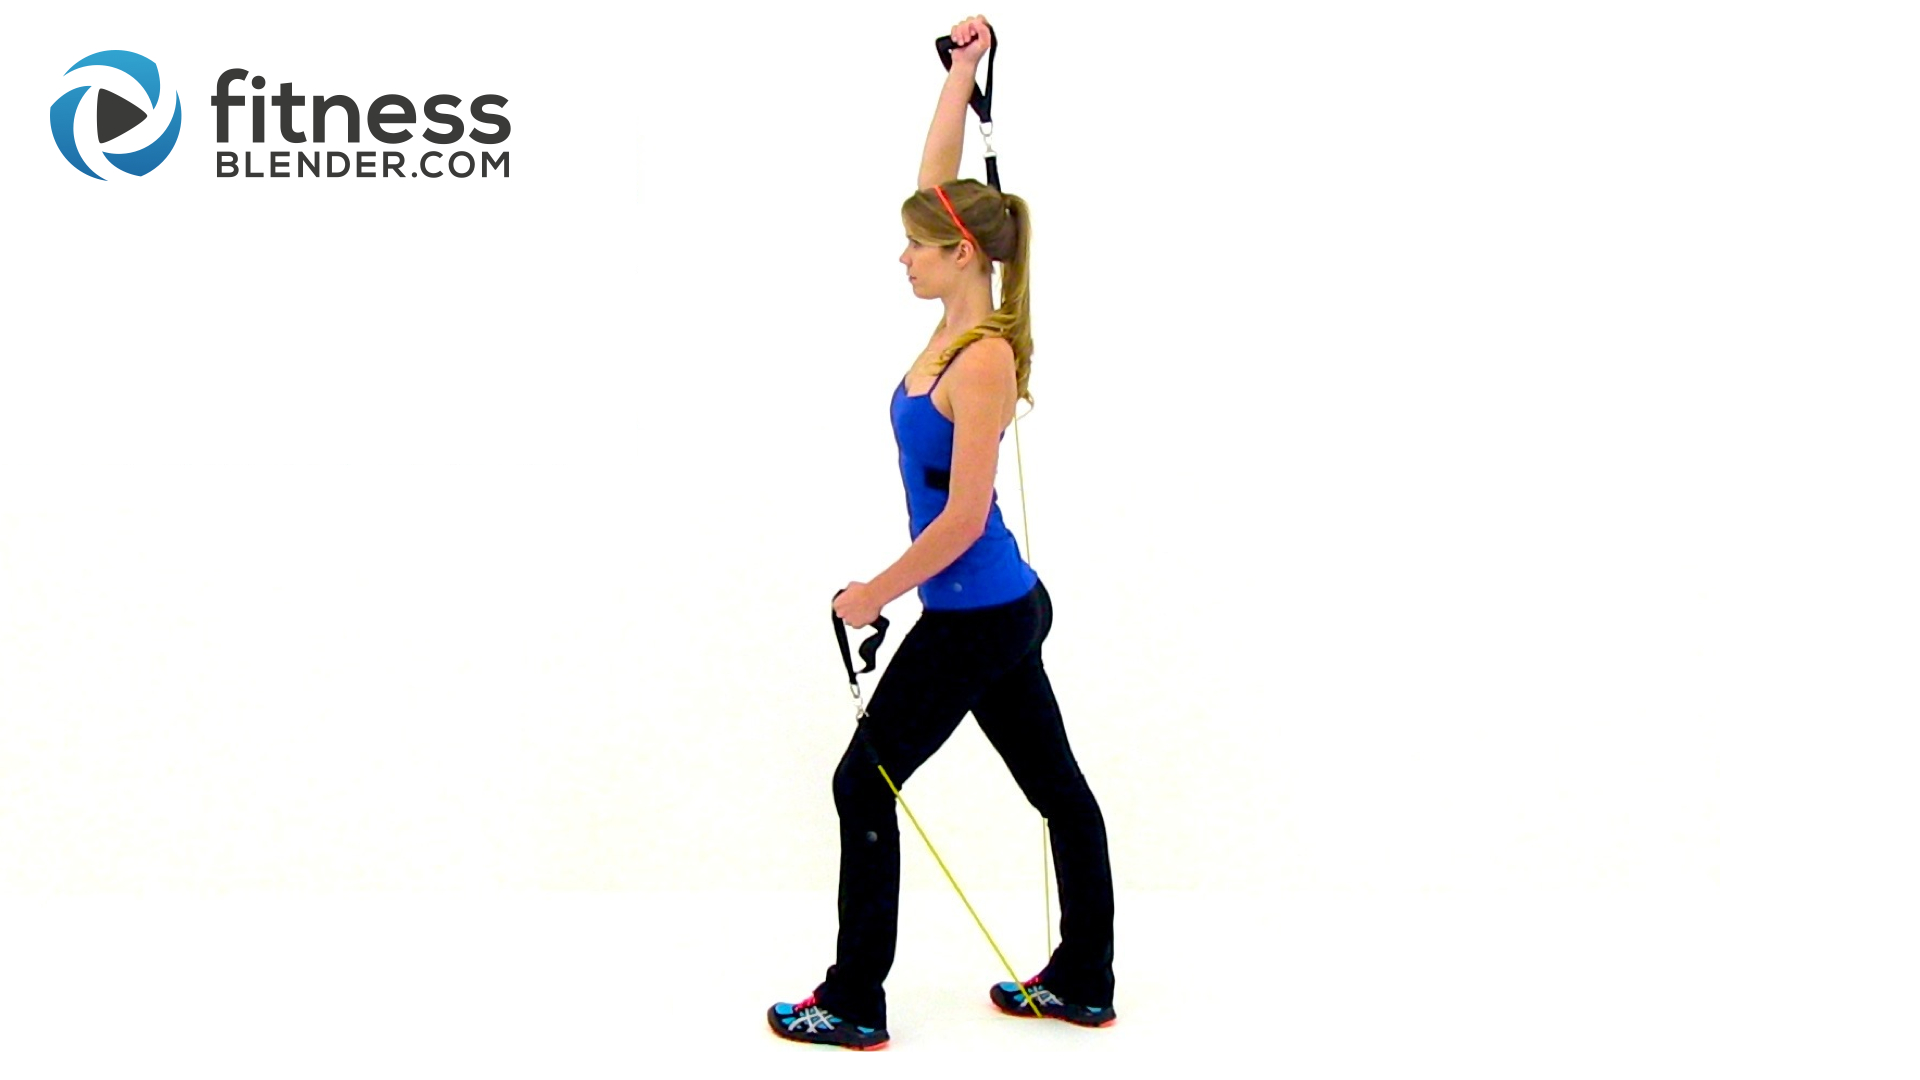 At Home Resistance Band Workout For The Upper Body Exercise Training Fitness Blender